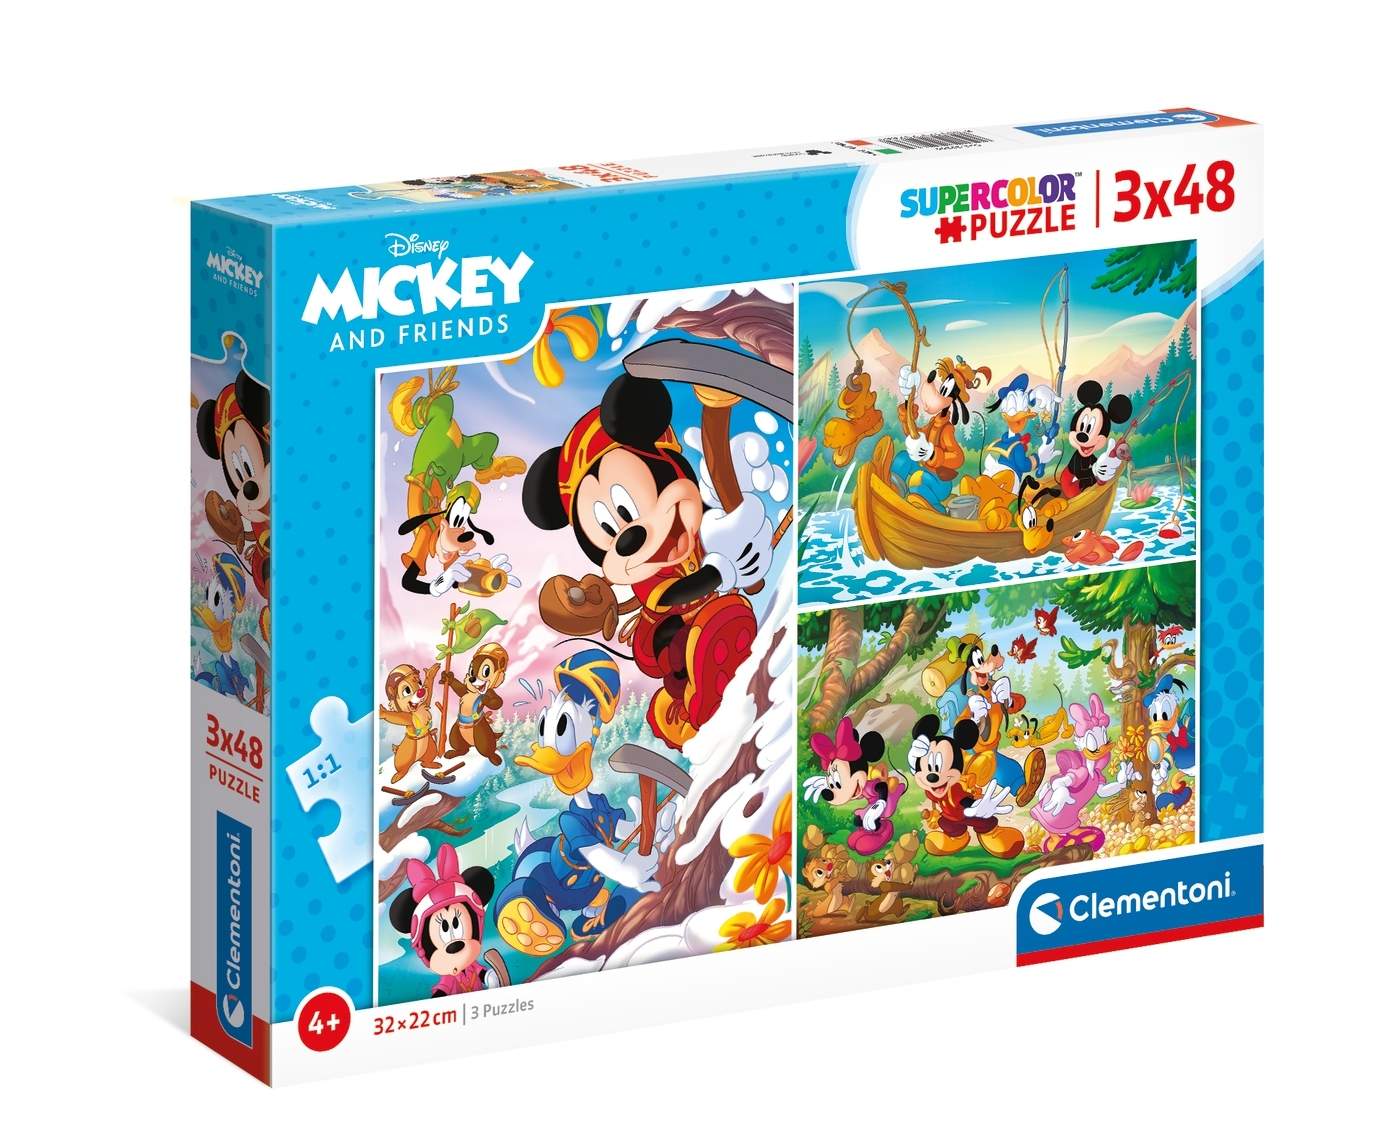 Puzzle SuperColor 3x48: Mickey and Friends (25266)